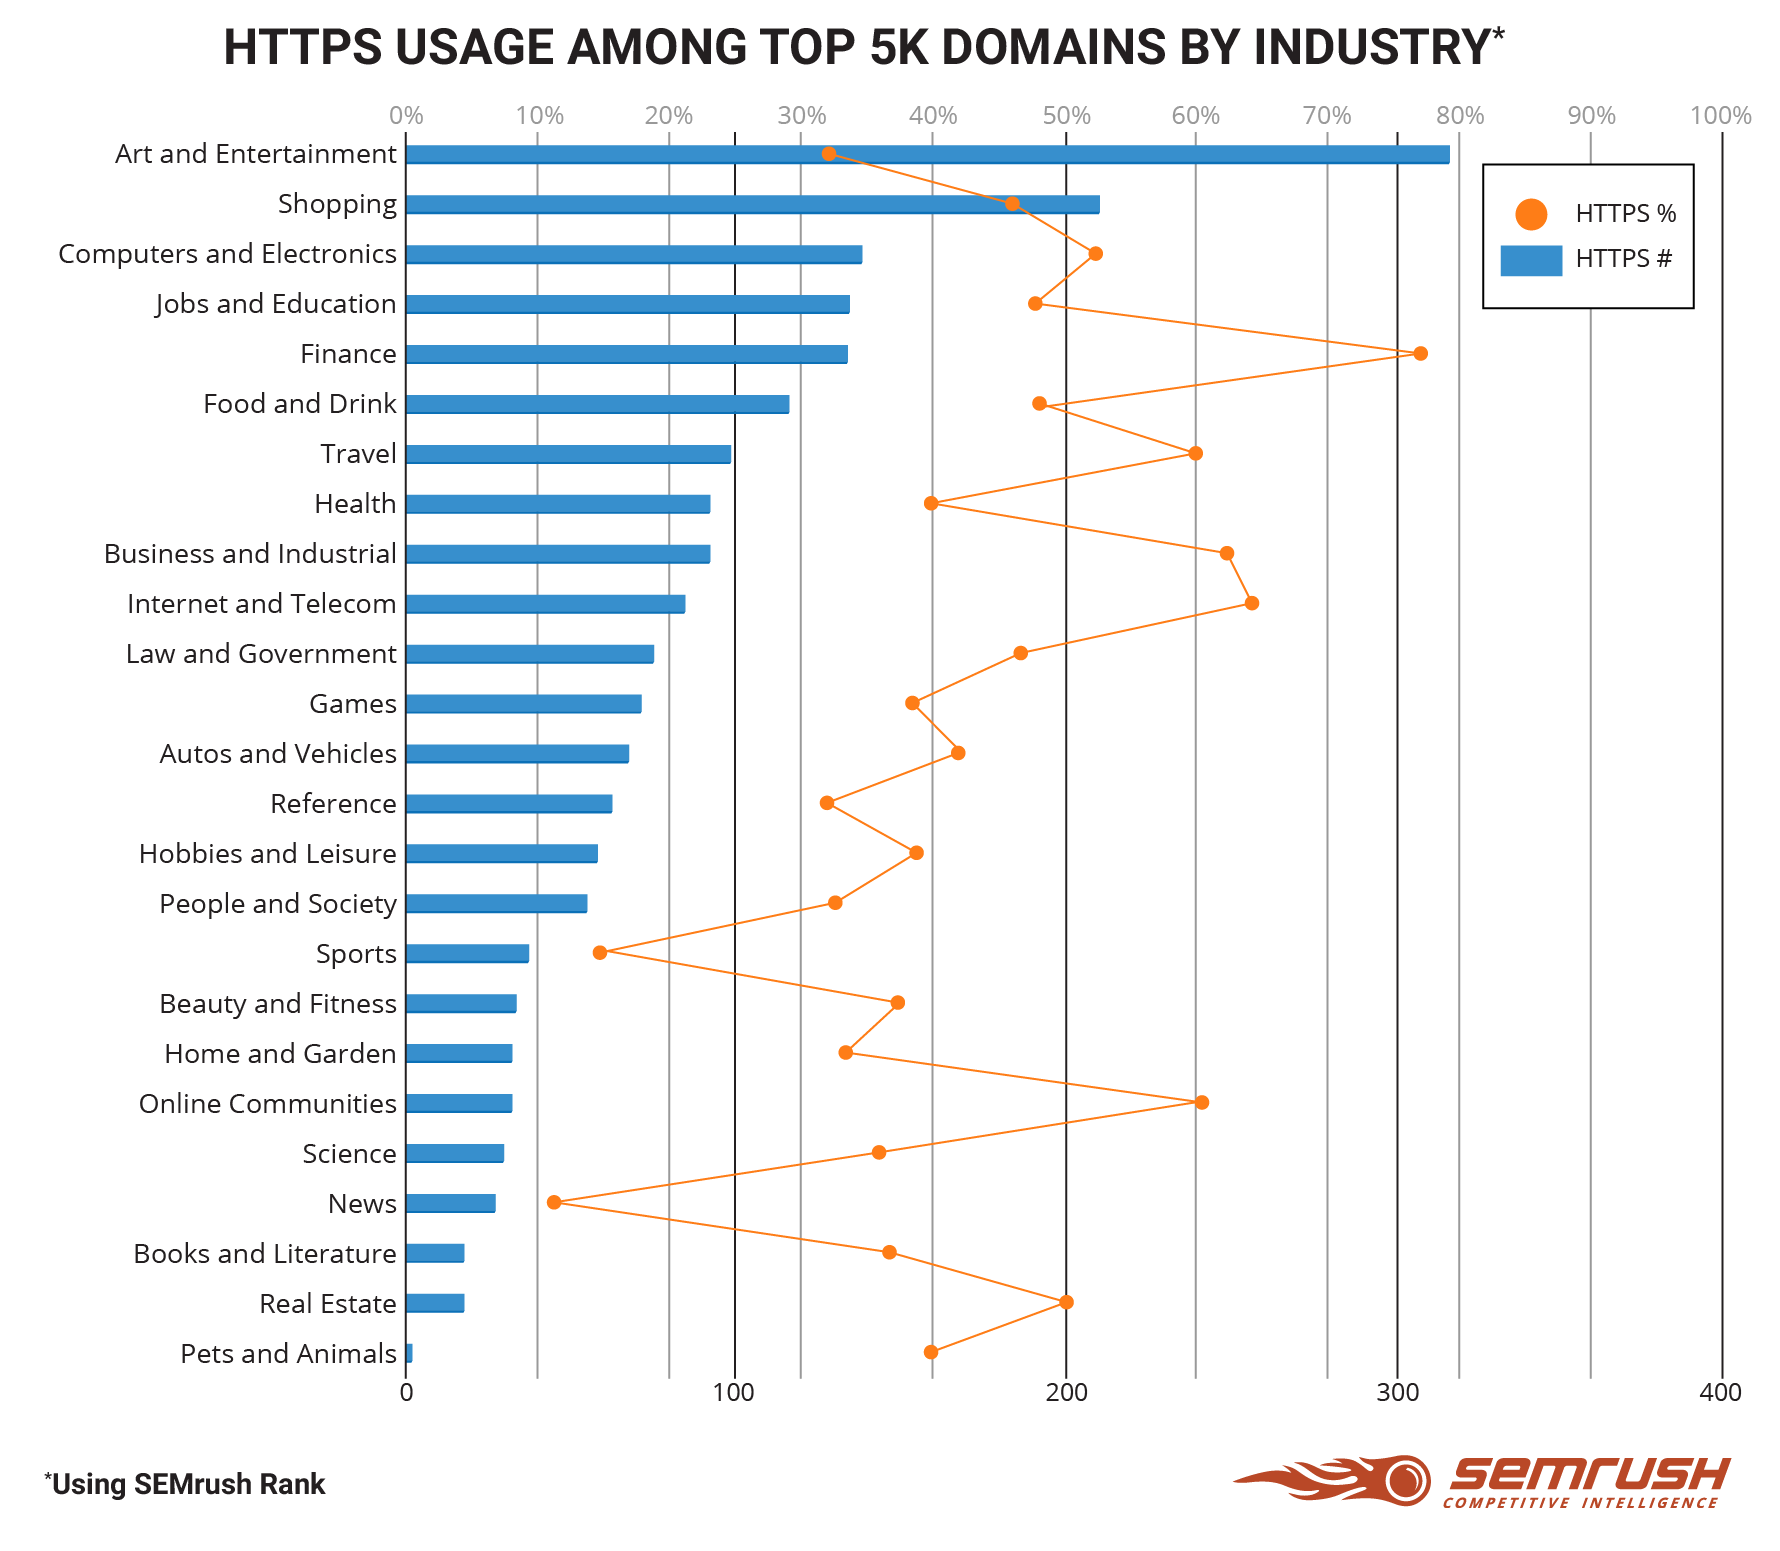 HTTPS usage among top 5k domains by industry